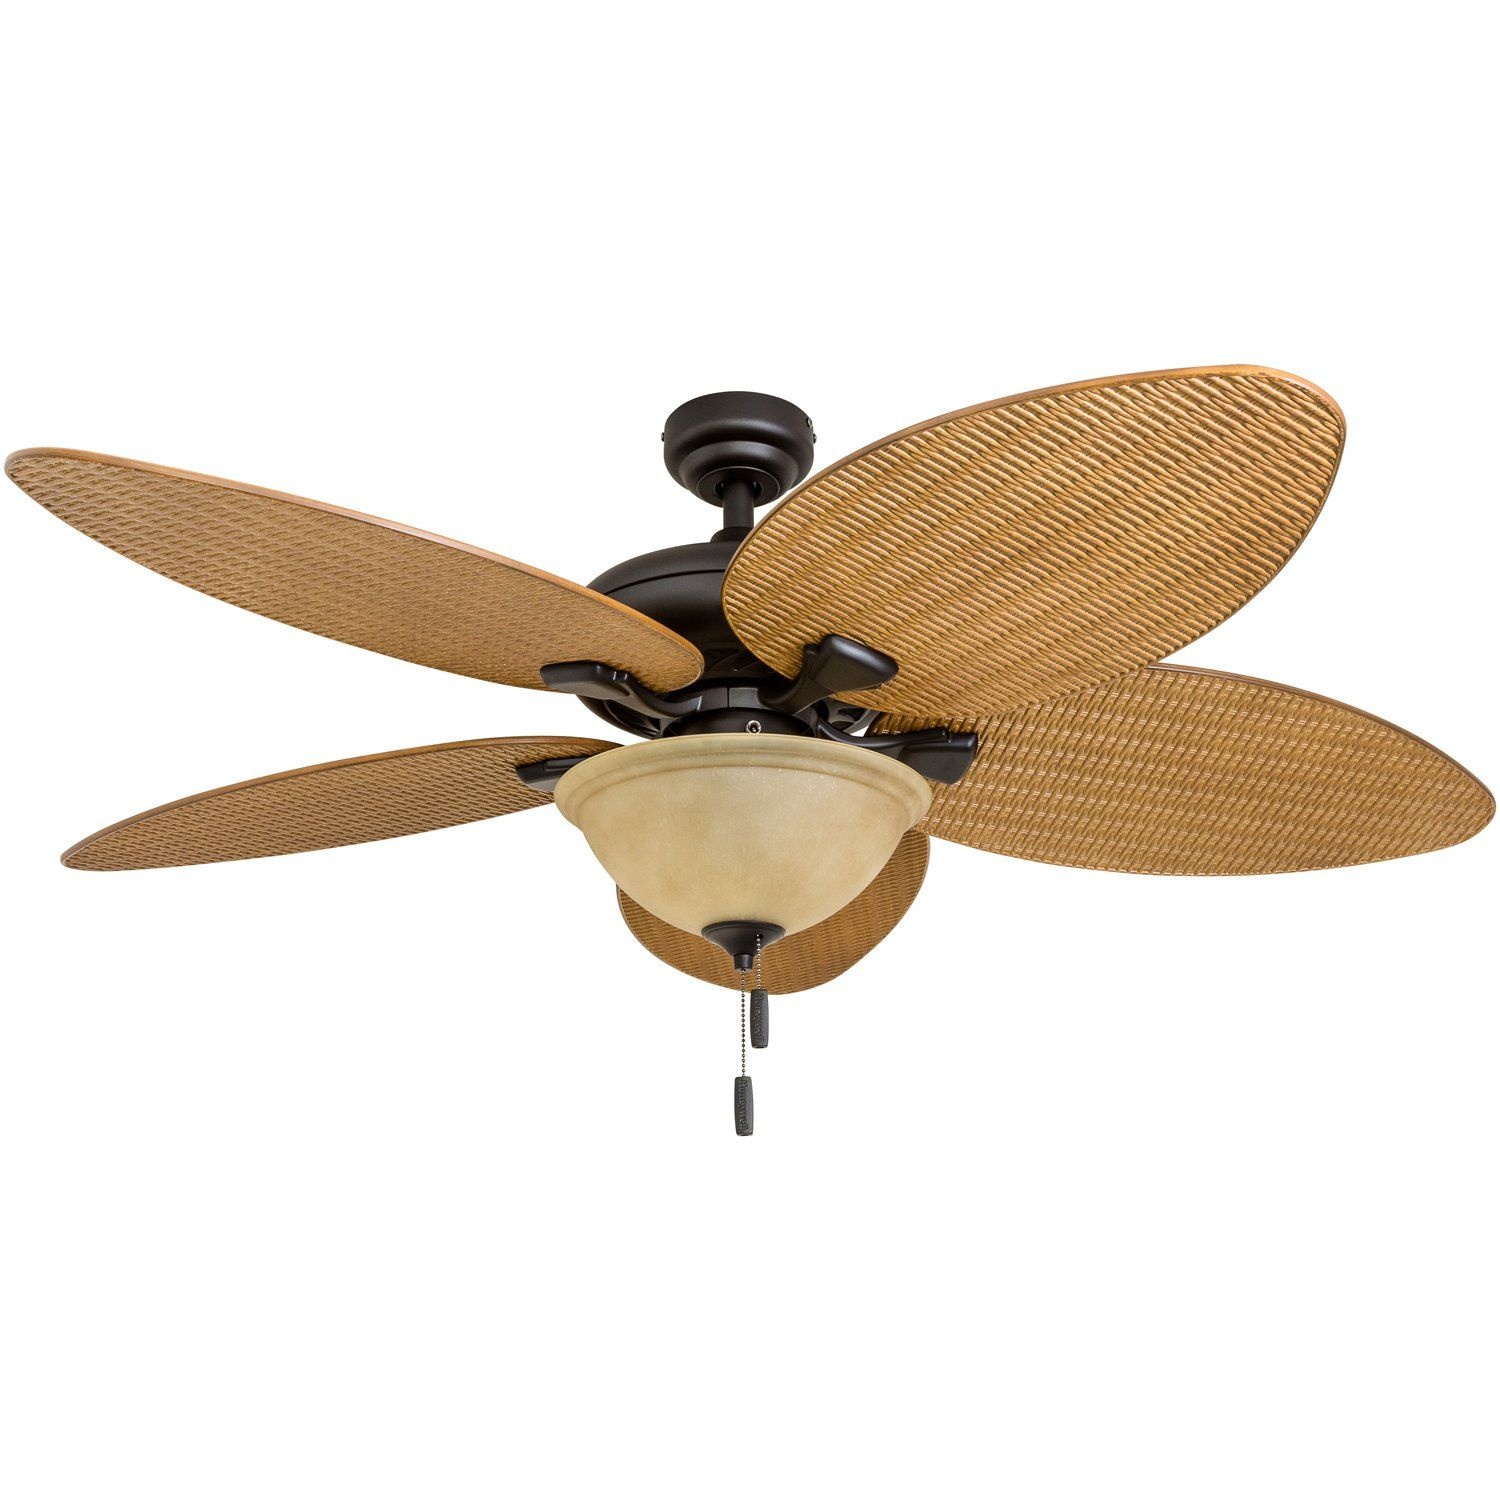 Honeywell Ceiling Fans 50507 01 Palm Island 52 Inch Tropical Ceiling Fan With Tuscan Bowl Light Five Leaf Wicker Blades Indoor Outdoor Sandstone In 2020